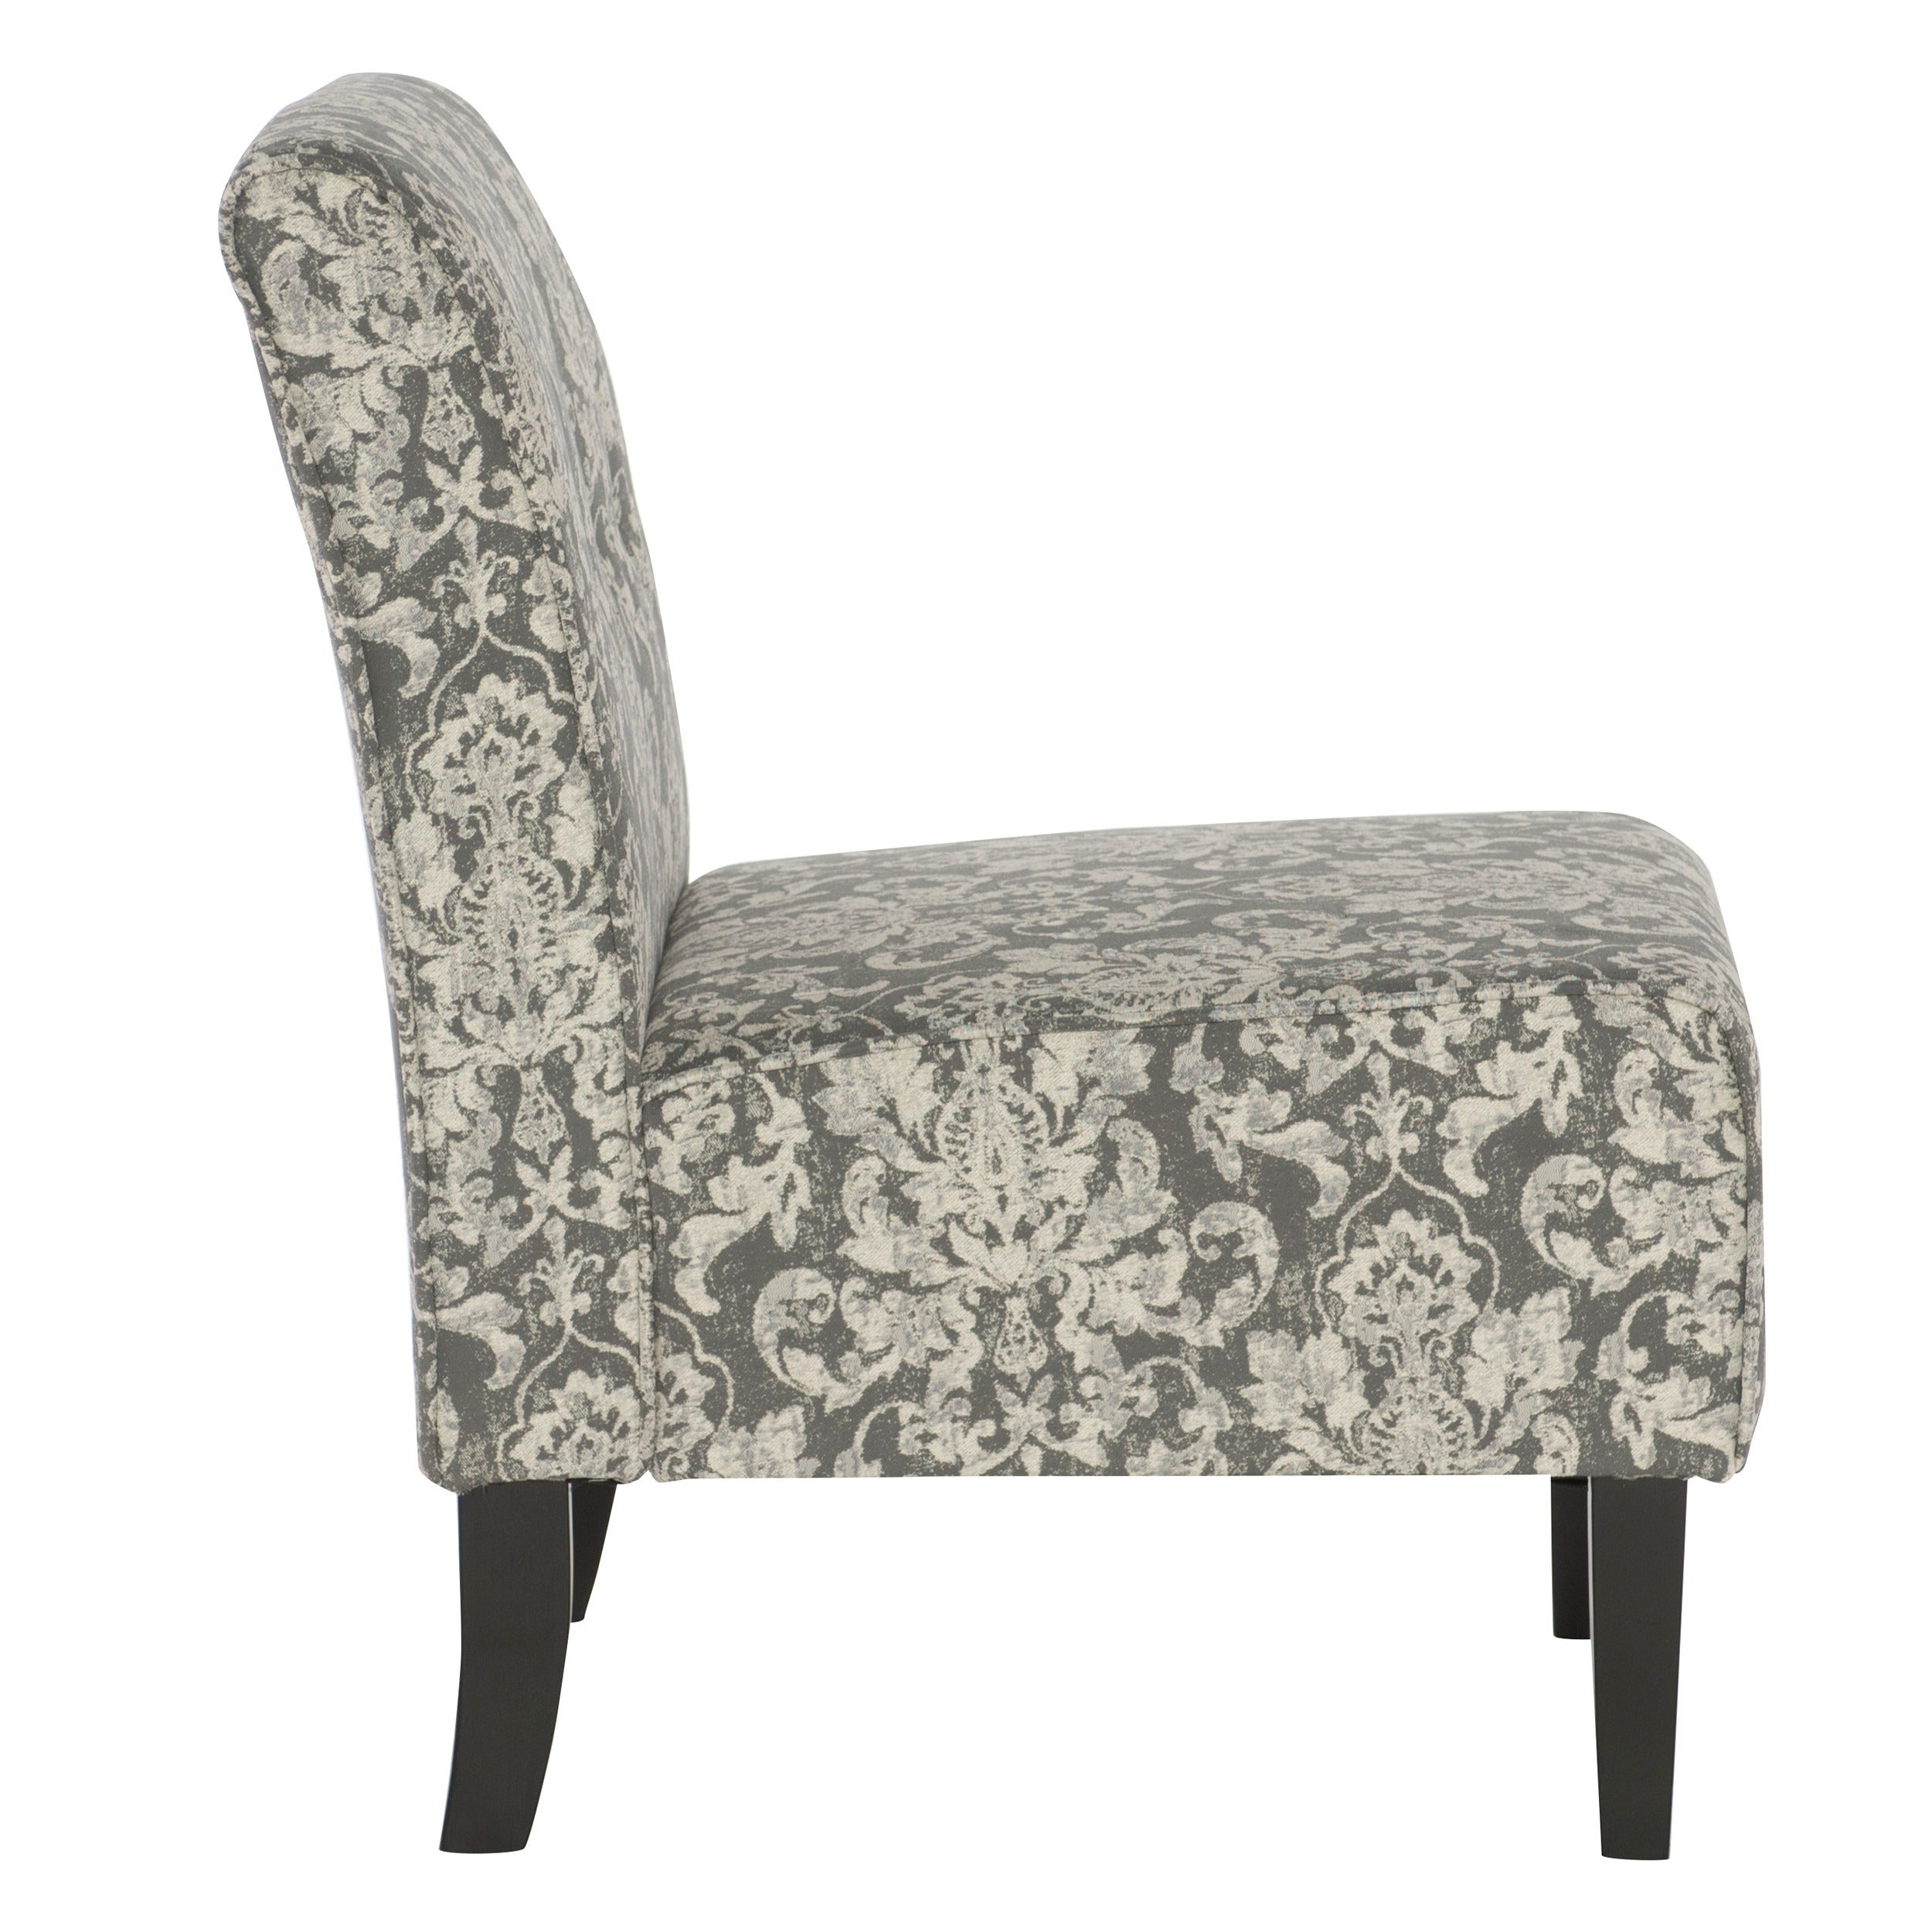 Linon Cozy Grey Woven Fabric Button Tufted Lounge Chair   Free Shipping  Today   Overstock   16399045